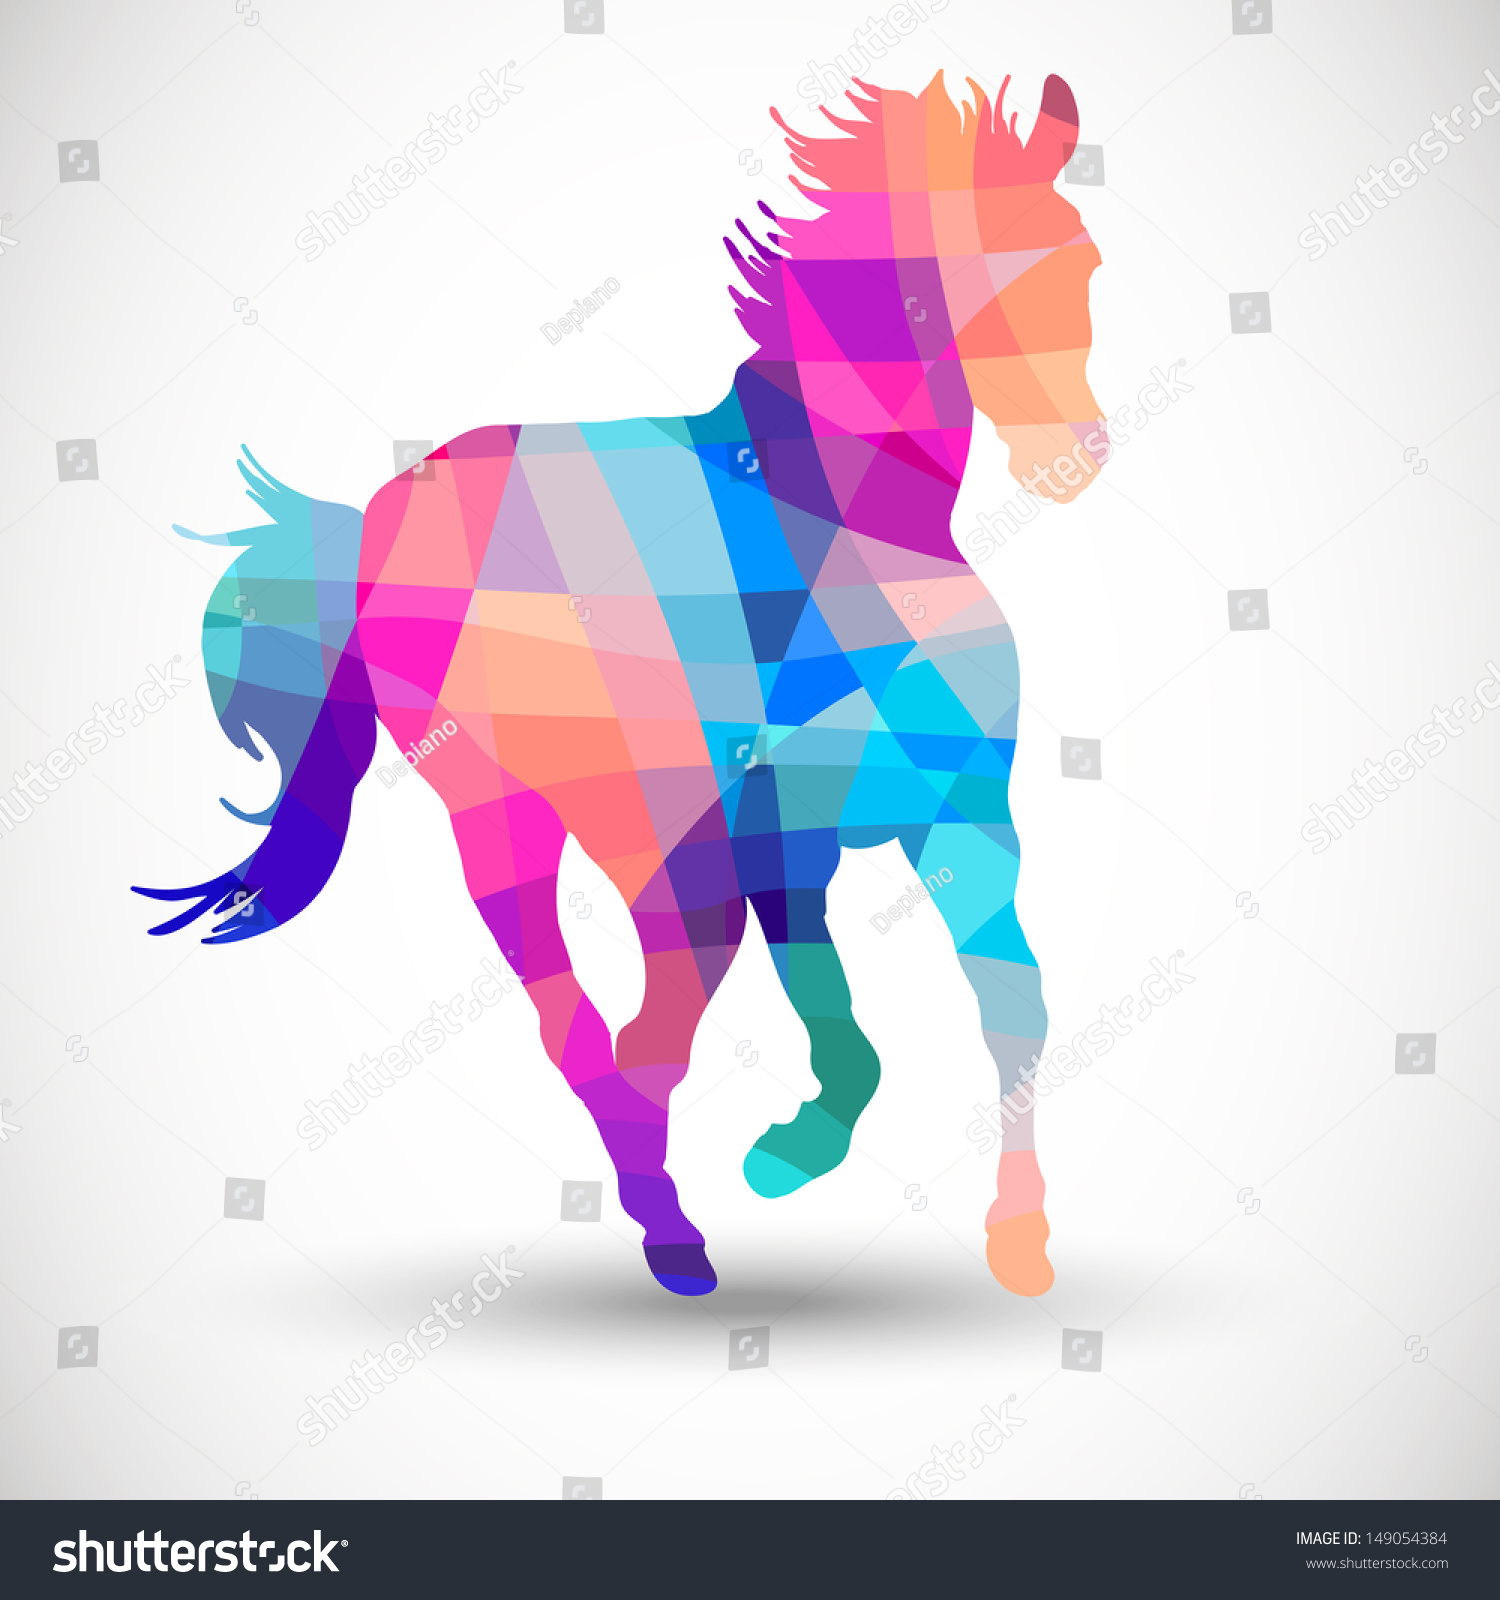 abstract horse geometric shapes stock vector 149054384